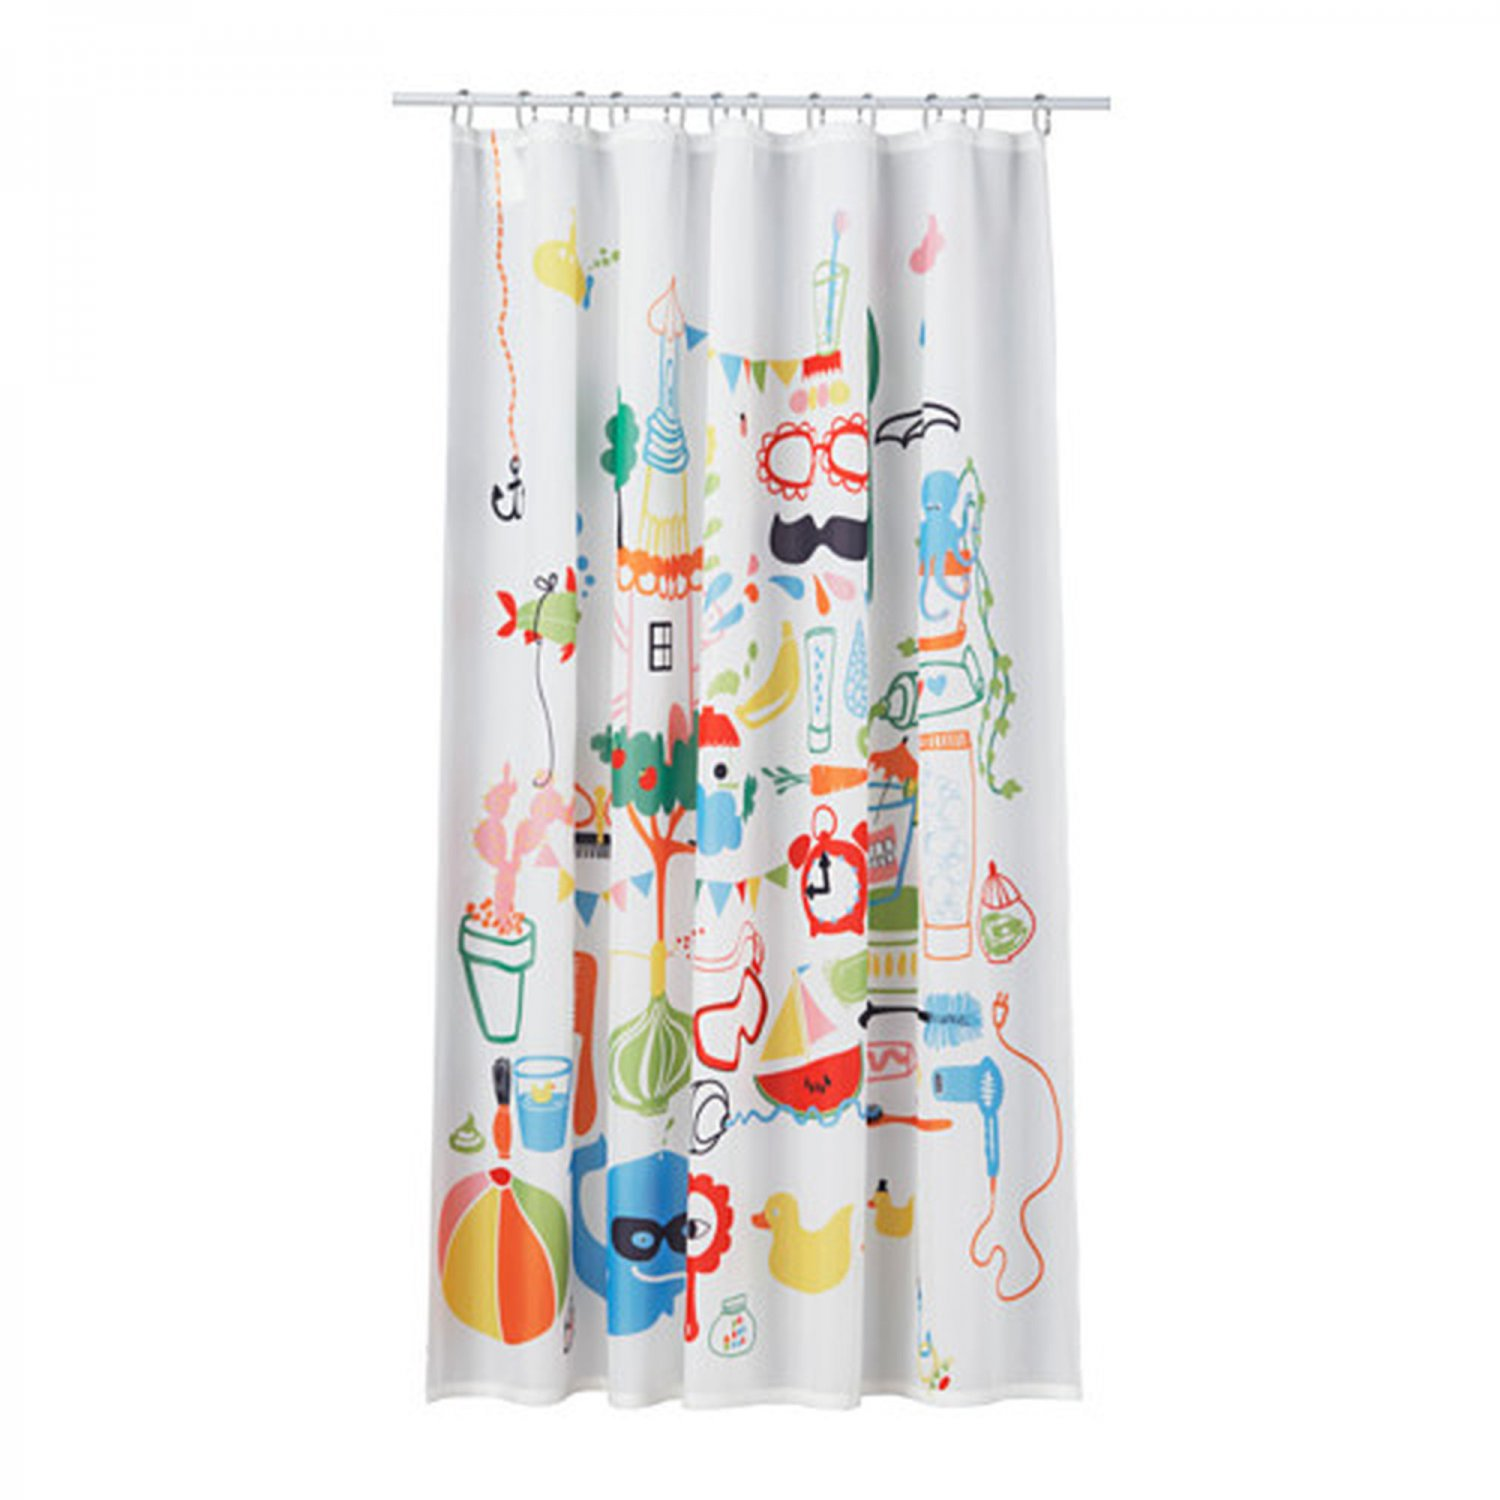 Ikea badb ck fabric shower curtain multicolor fun kids for Kids drapery fabric